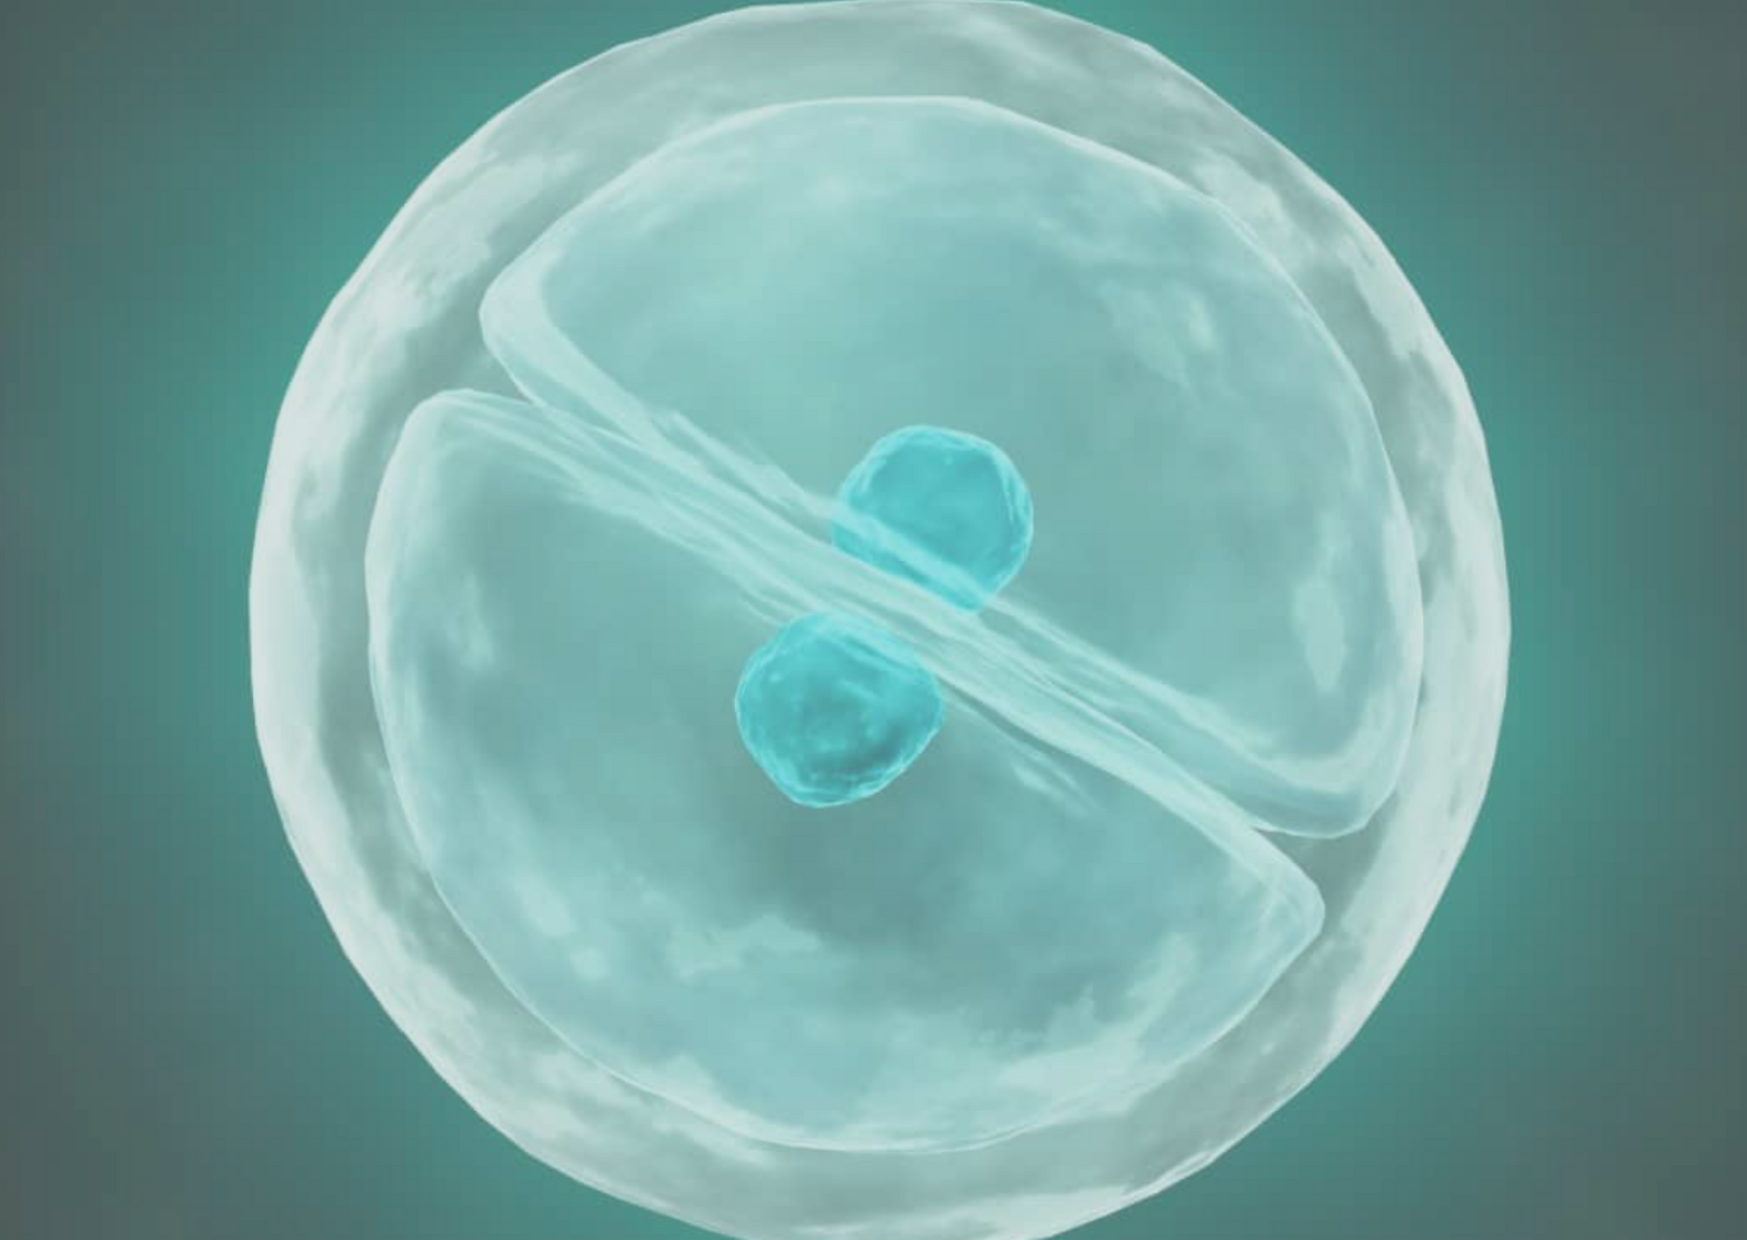 IVF Support